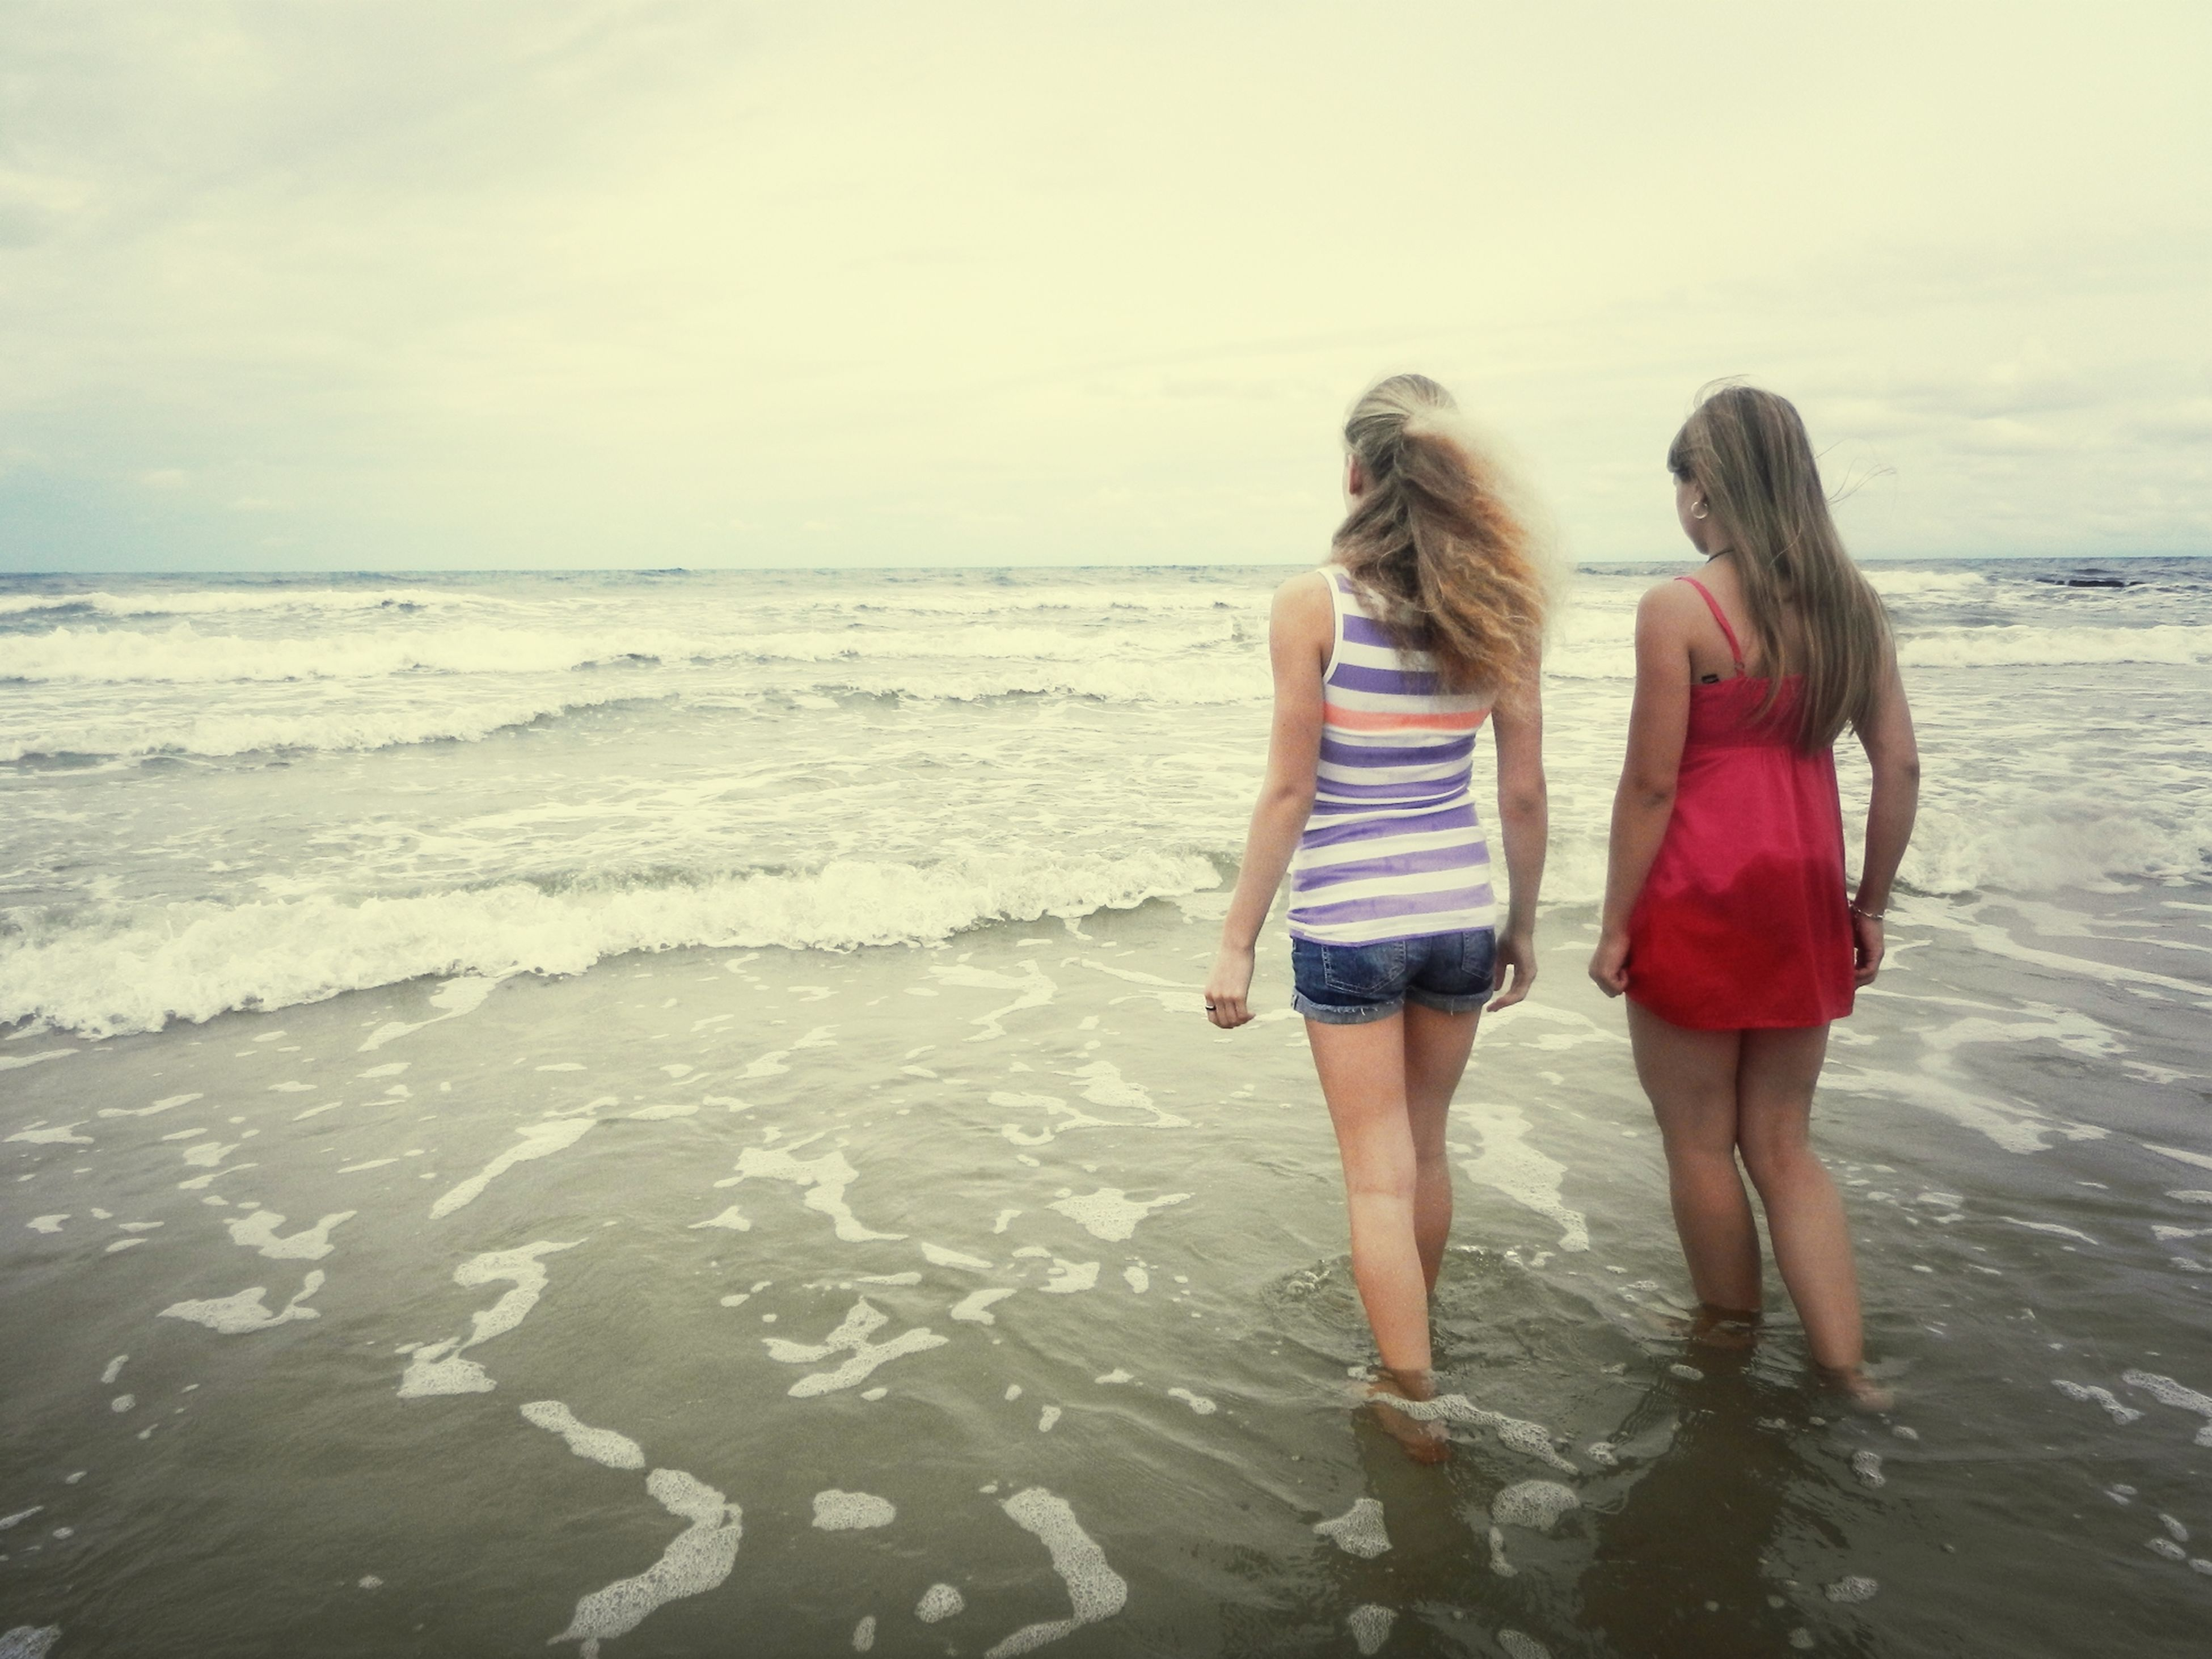 sea, beach, water, horizon over water, shore, lifestyles, leisure activity, rear view, full length, standing, vacations, sand, person, togetherness, sky, casual clothing, childhood, walking, girls